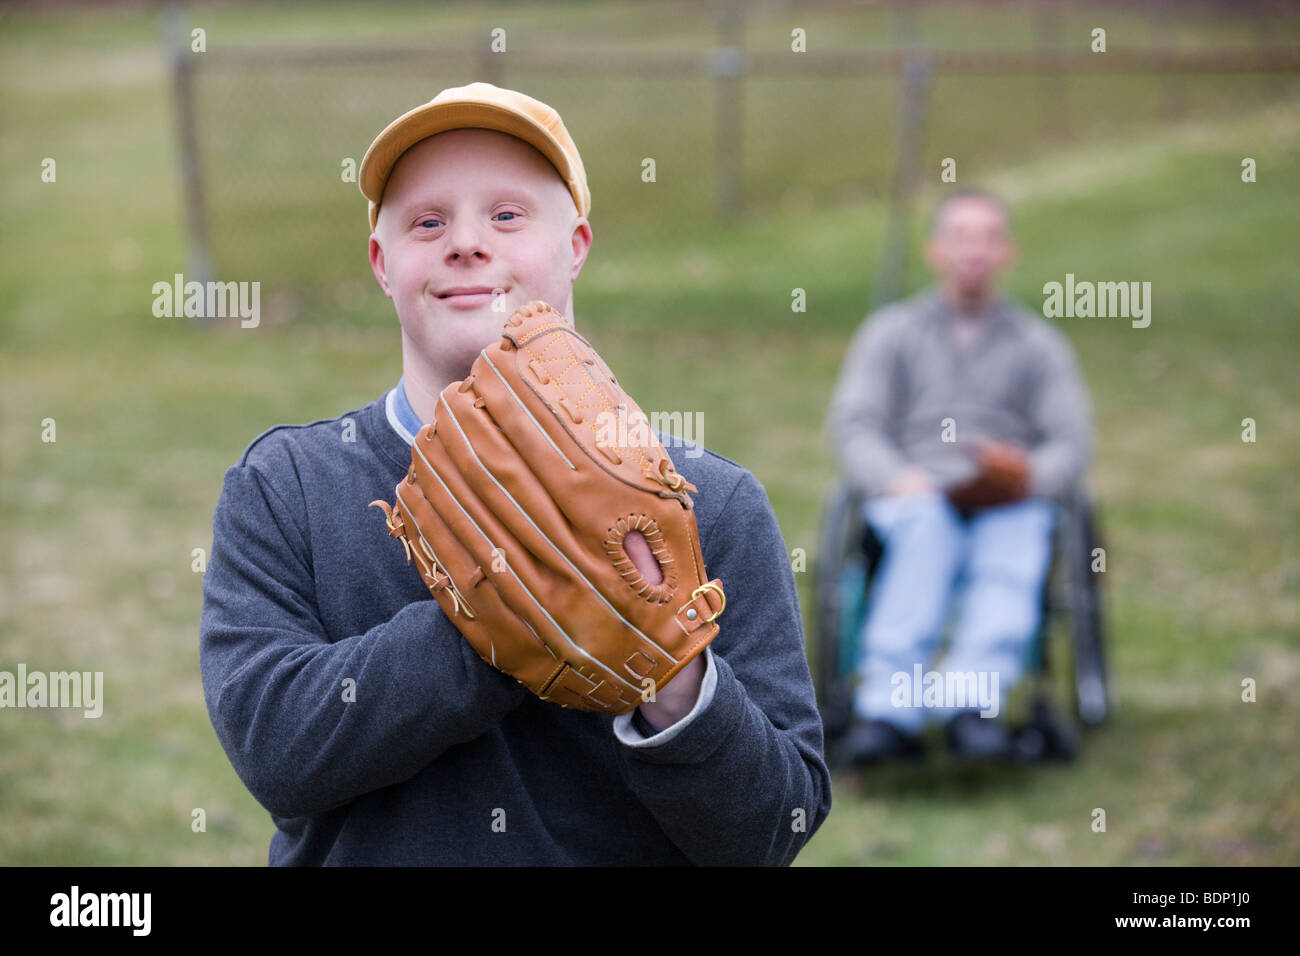 Man wearing a baseball glove - Stock Image